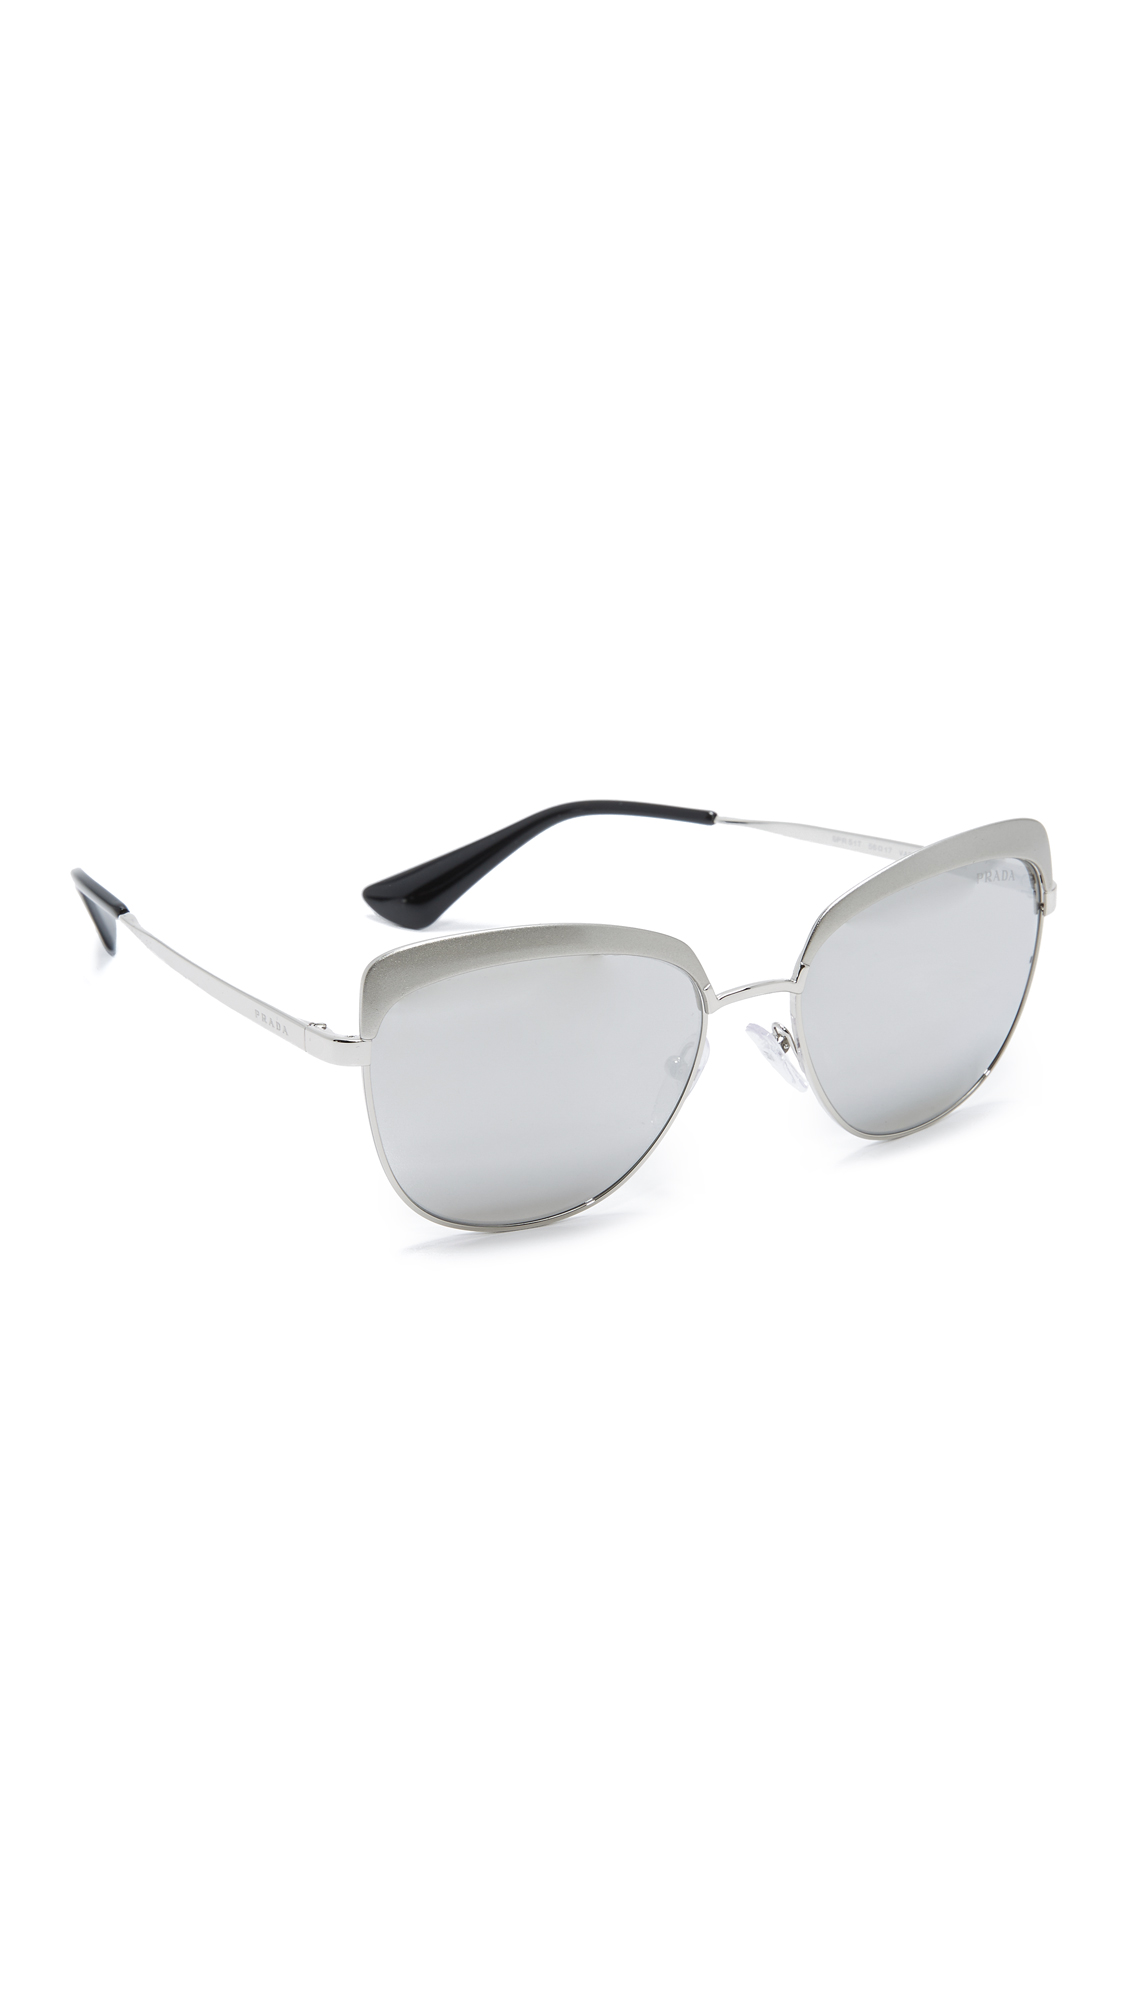 Prada Brow Cat Eye Mirrored Sunglasses - Metallized Silver/Grey Mirror at Shopbop